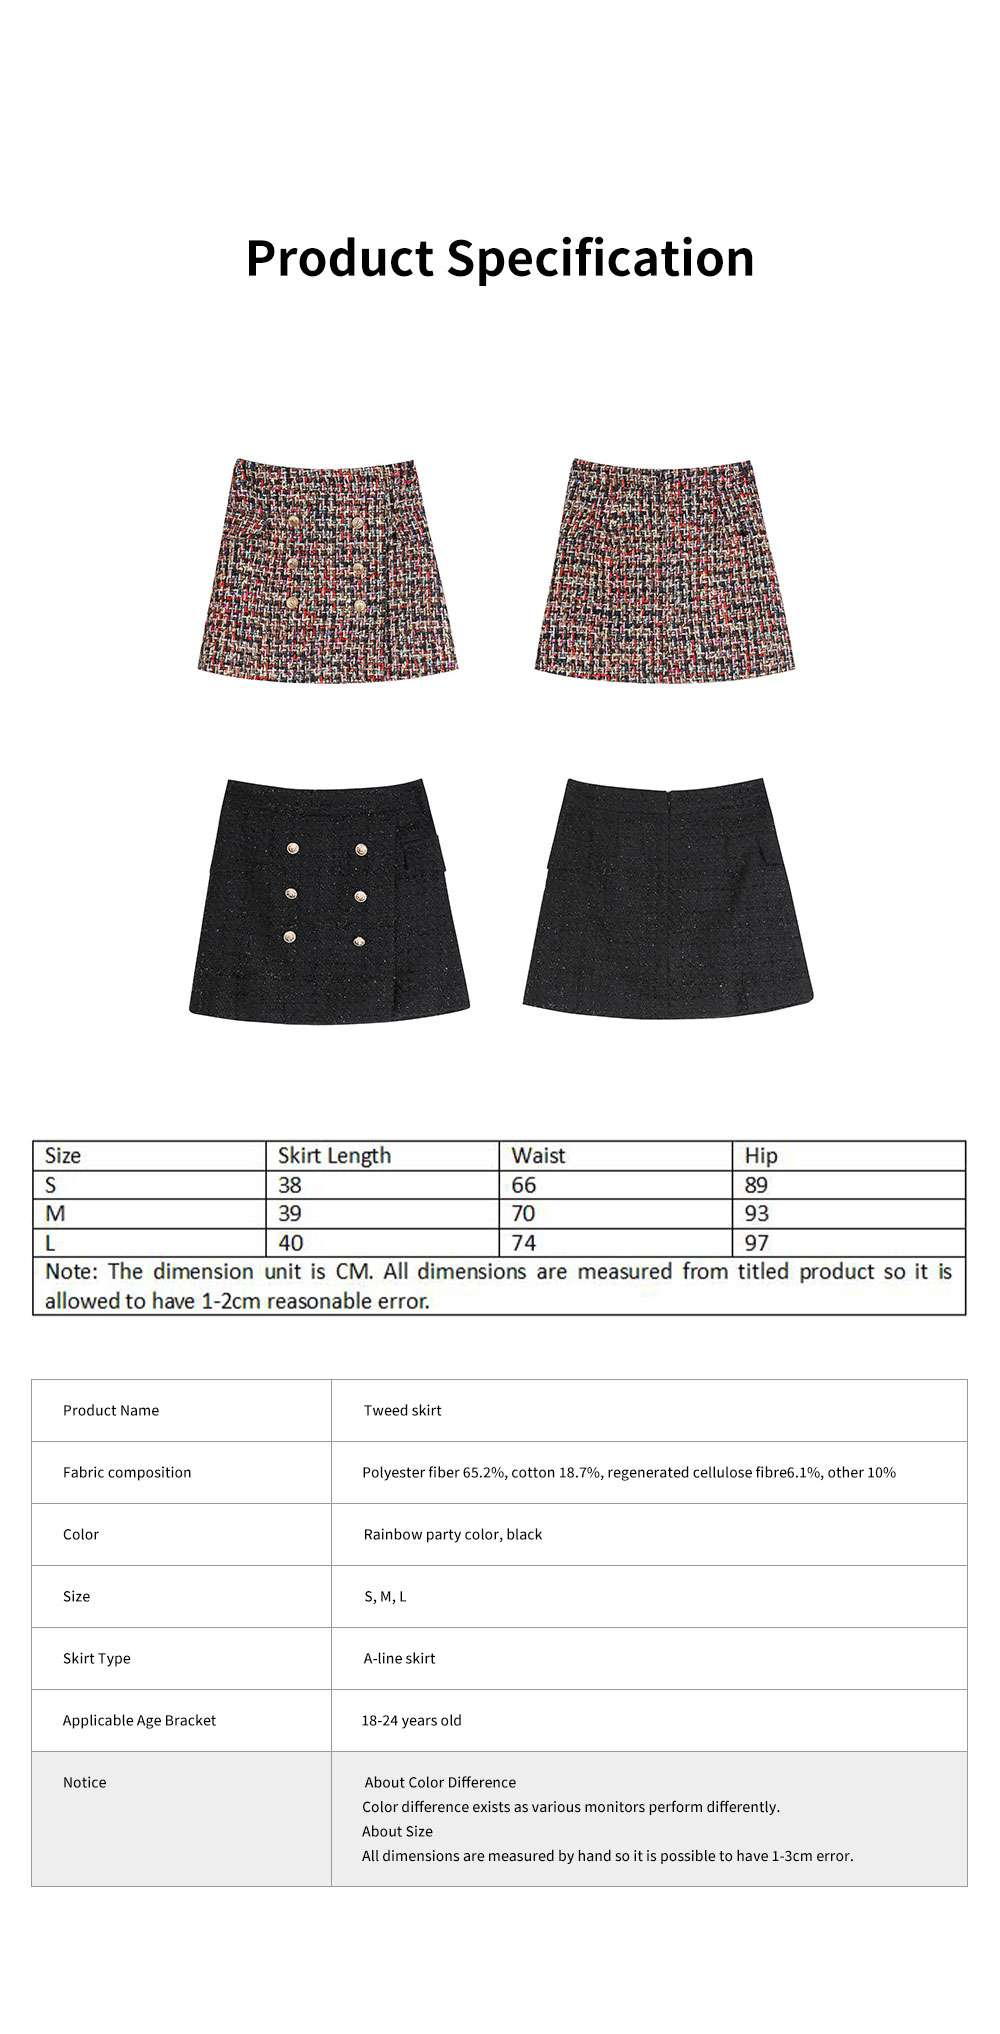 Autumn Winter 2019 New Style Tweed Skirt Chanel's Style Bust Skirt for Lady Wear Fashionable and Unique A-line Skirt 6